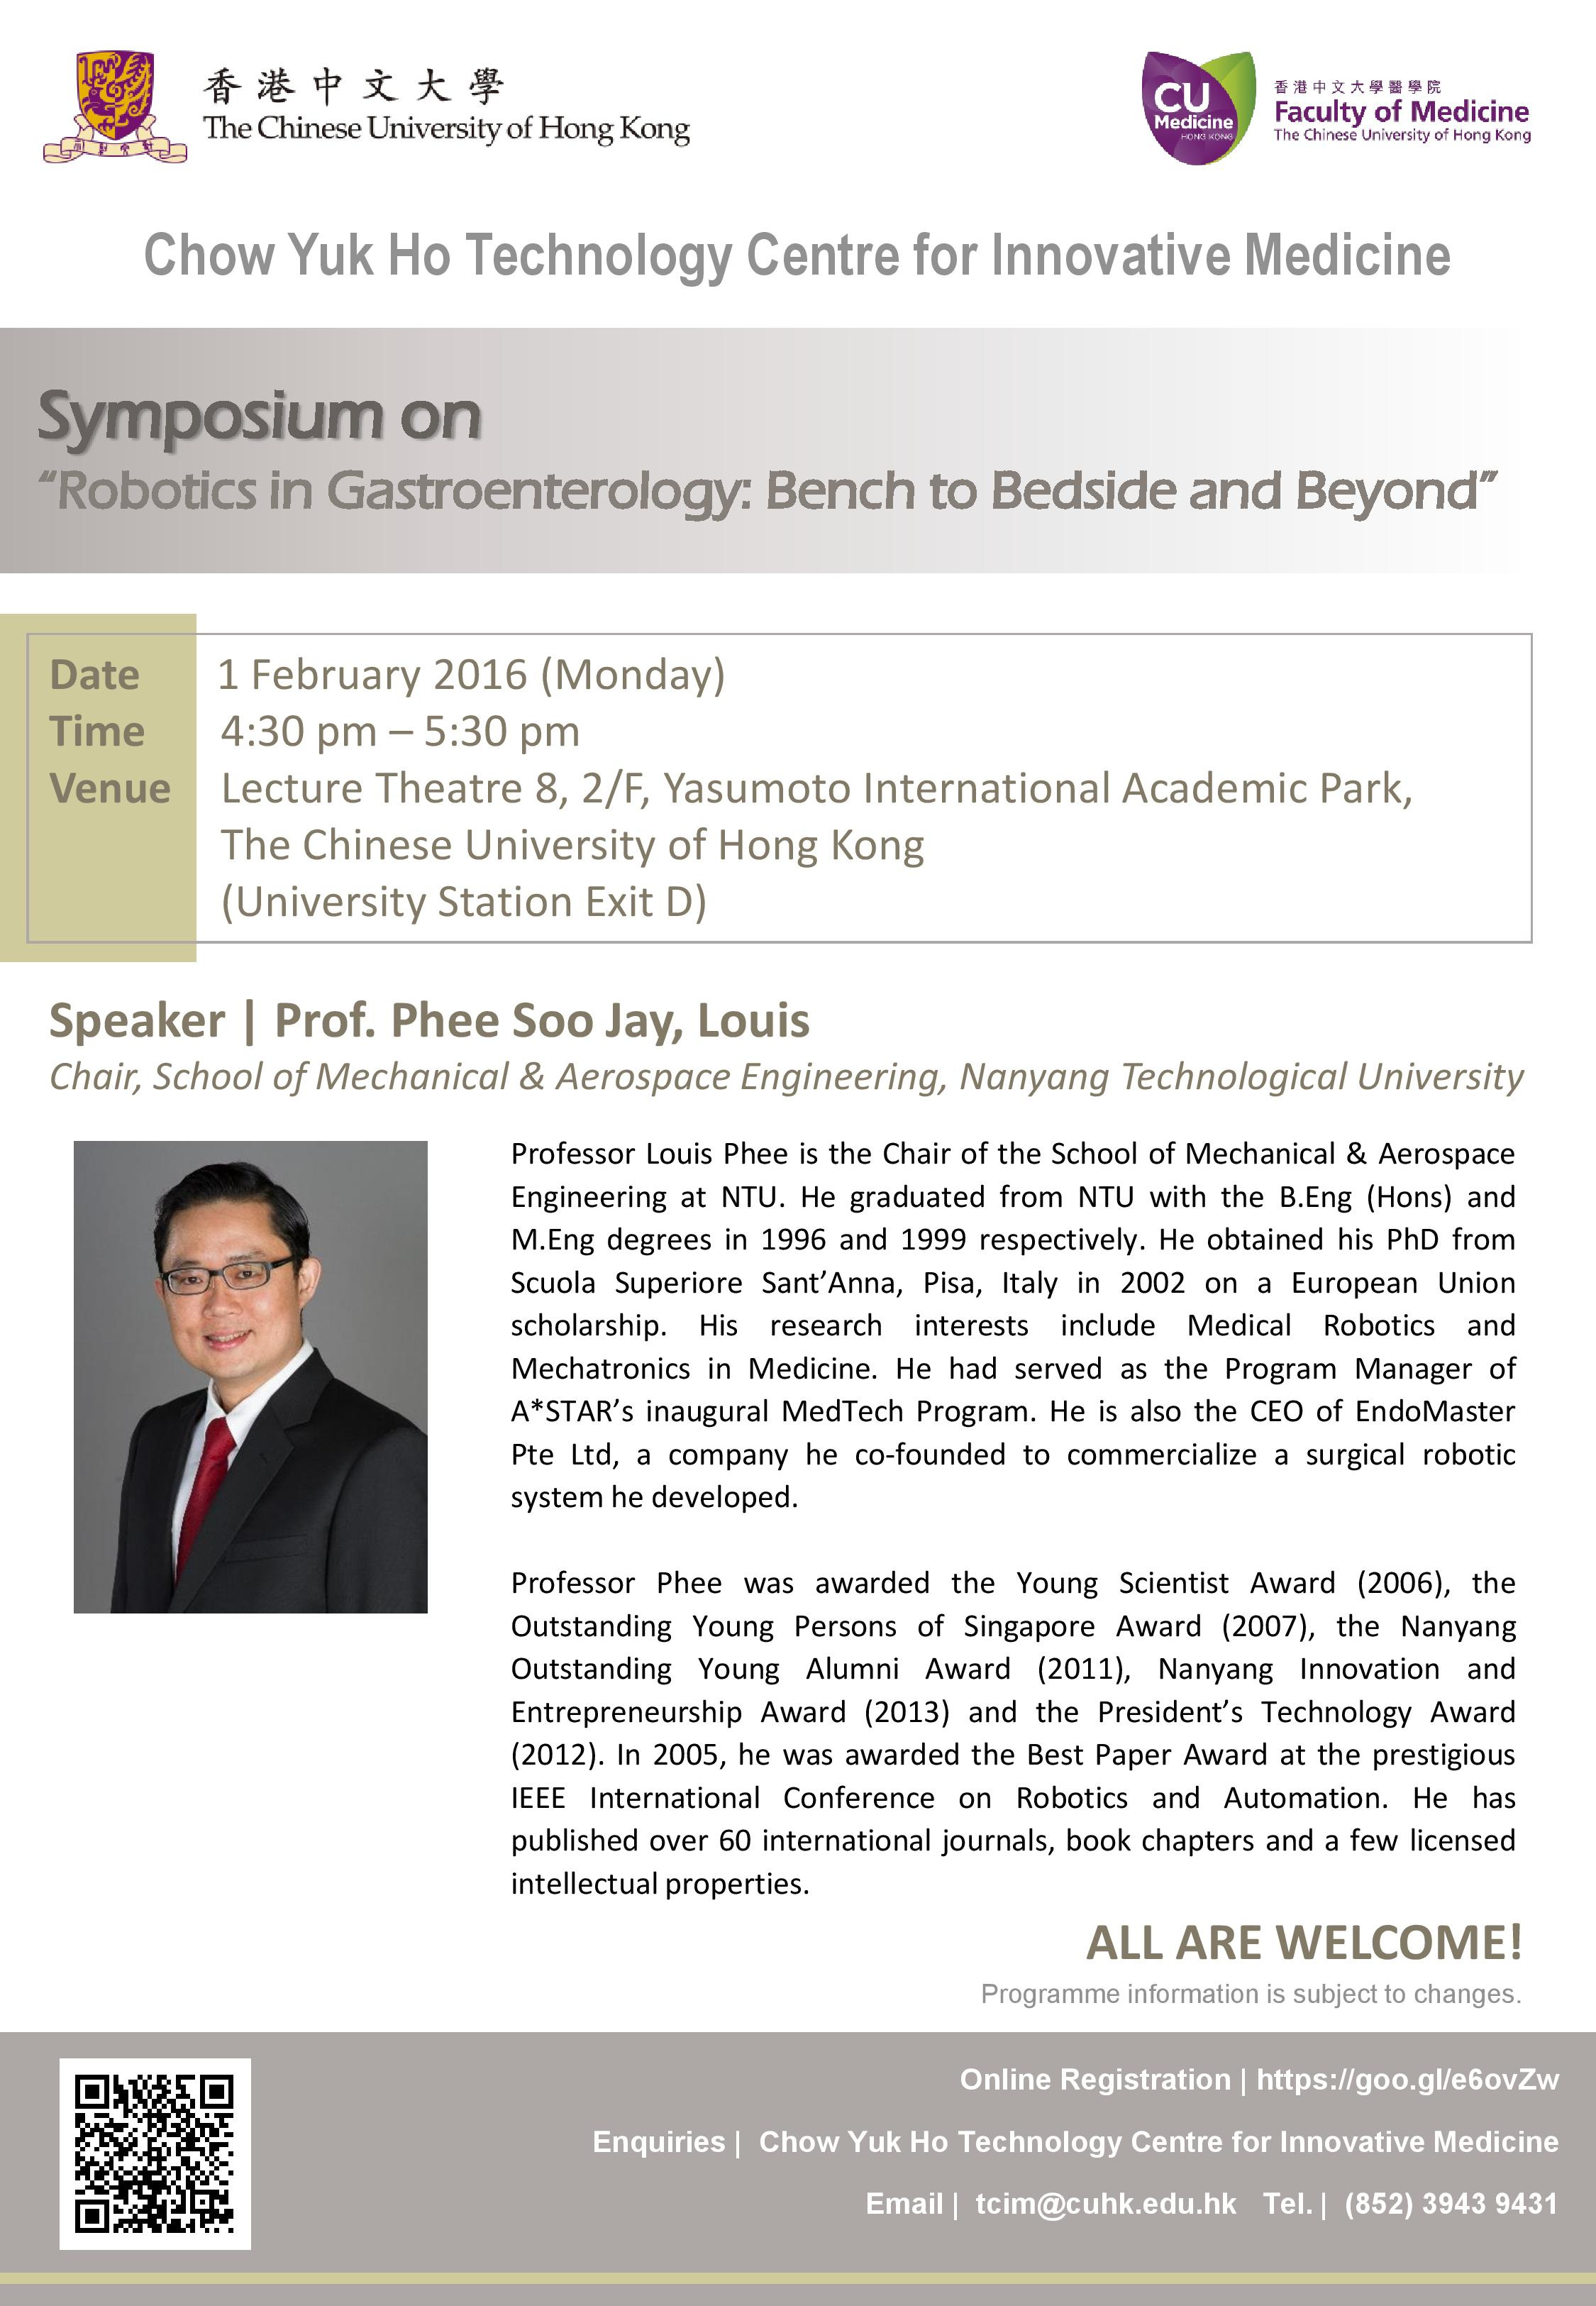 Symposium Series on Robotics in Gastroenterology: Bench to Bedside and Beyond